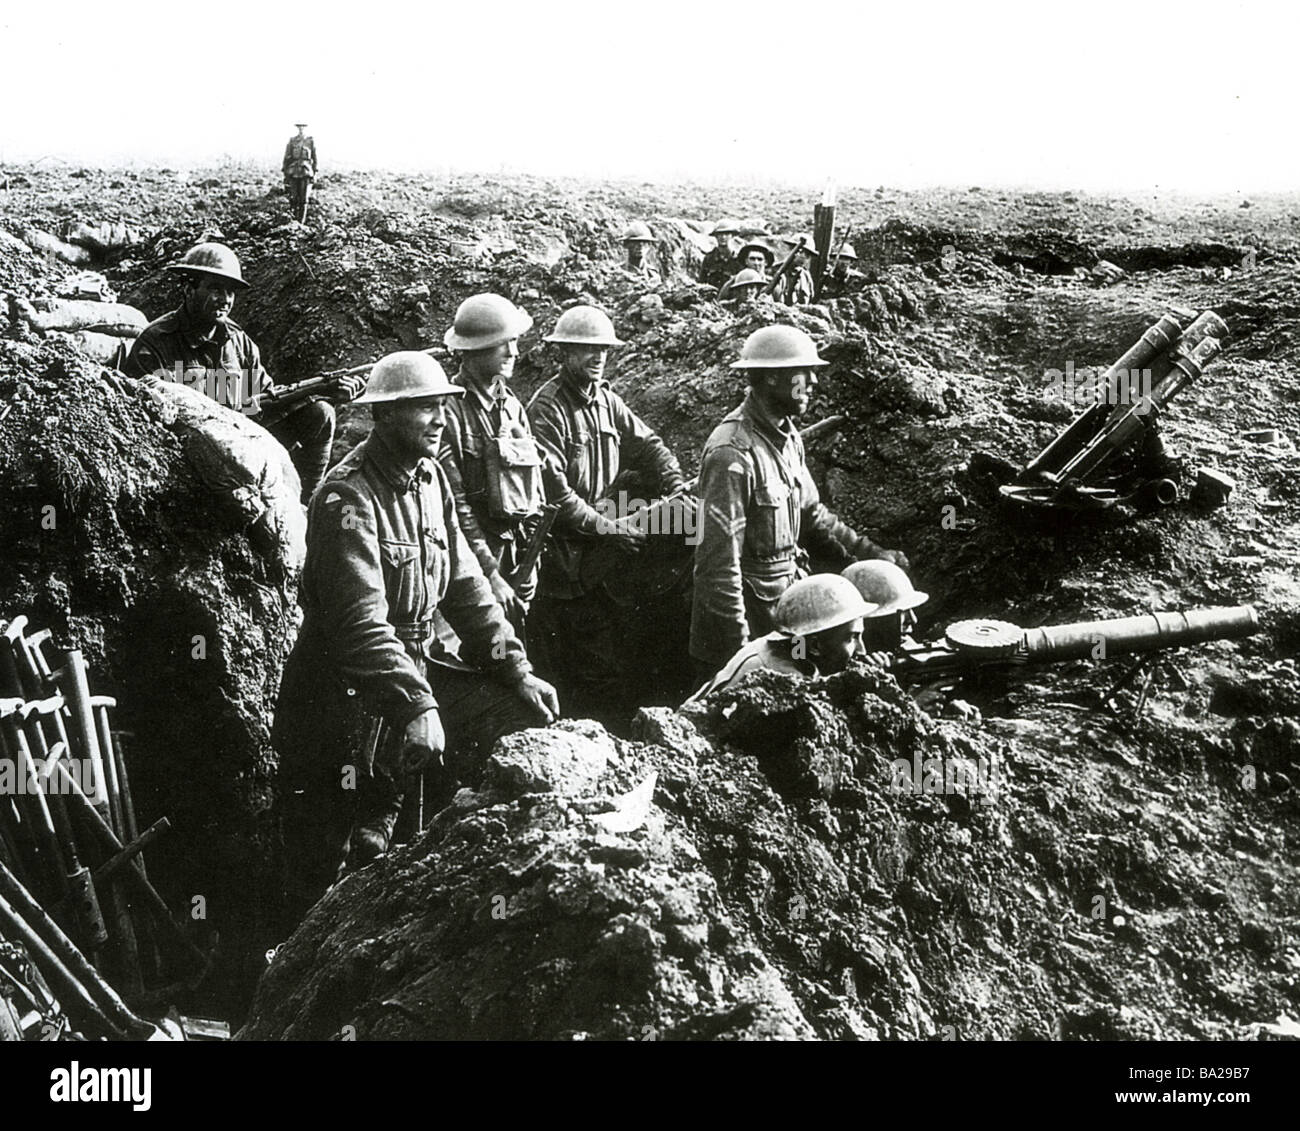 BRITISH TROOPS in France in WWI - Stock Image